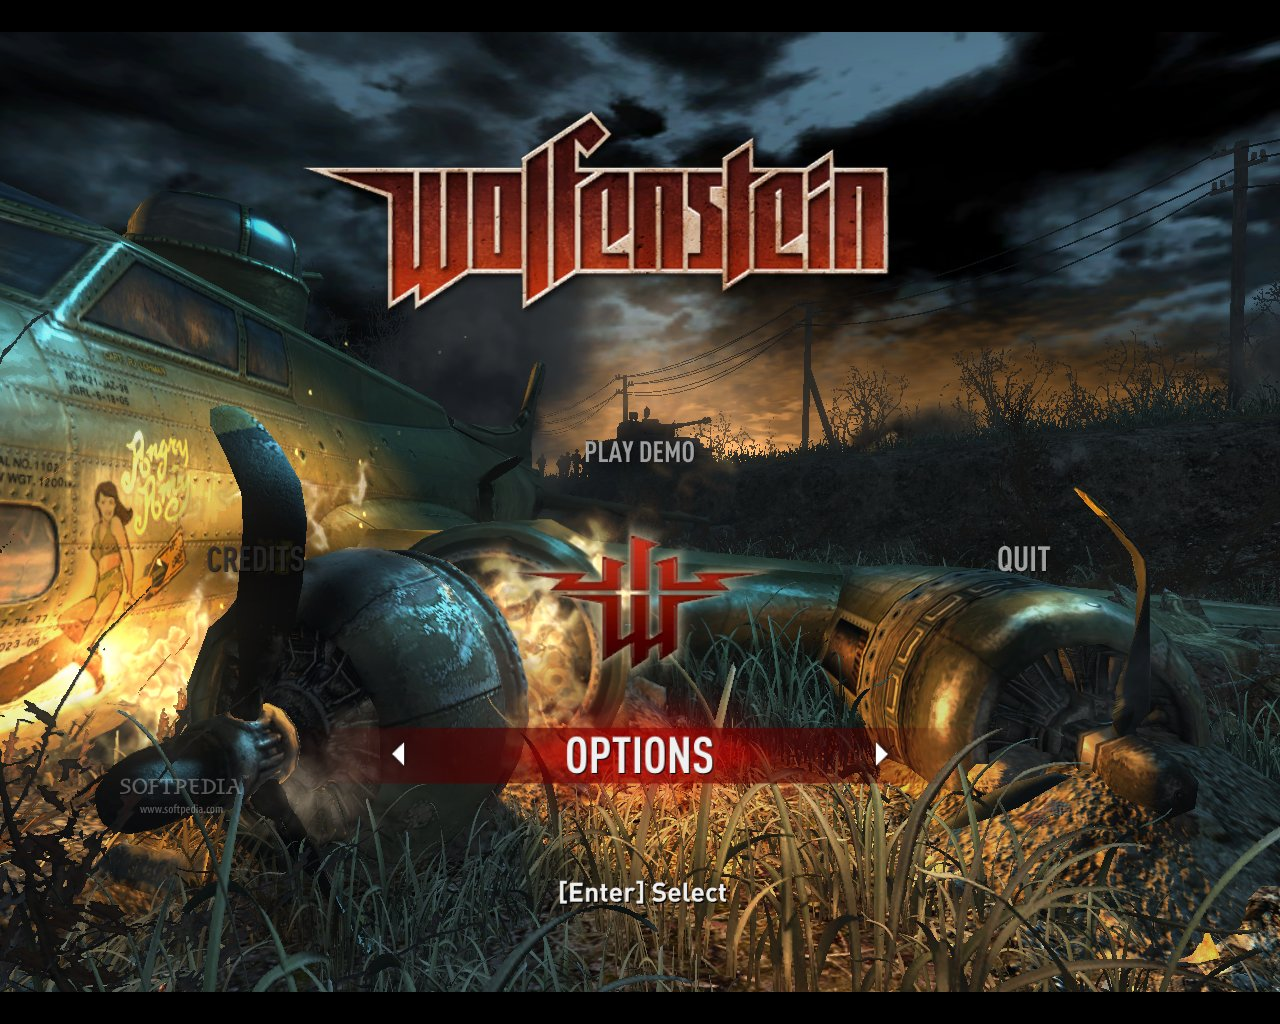 wolfenstein update 1 2-vitality full game free pc, download, play